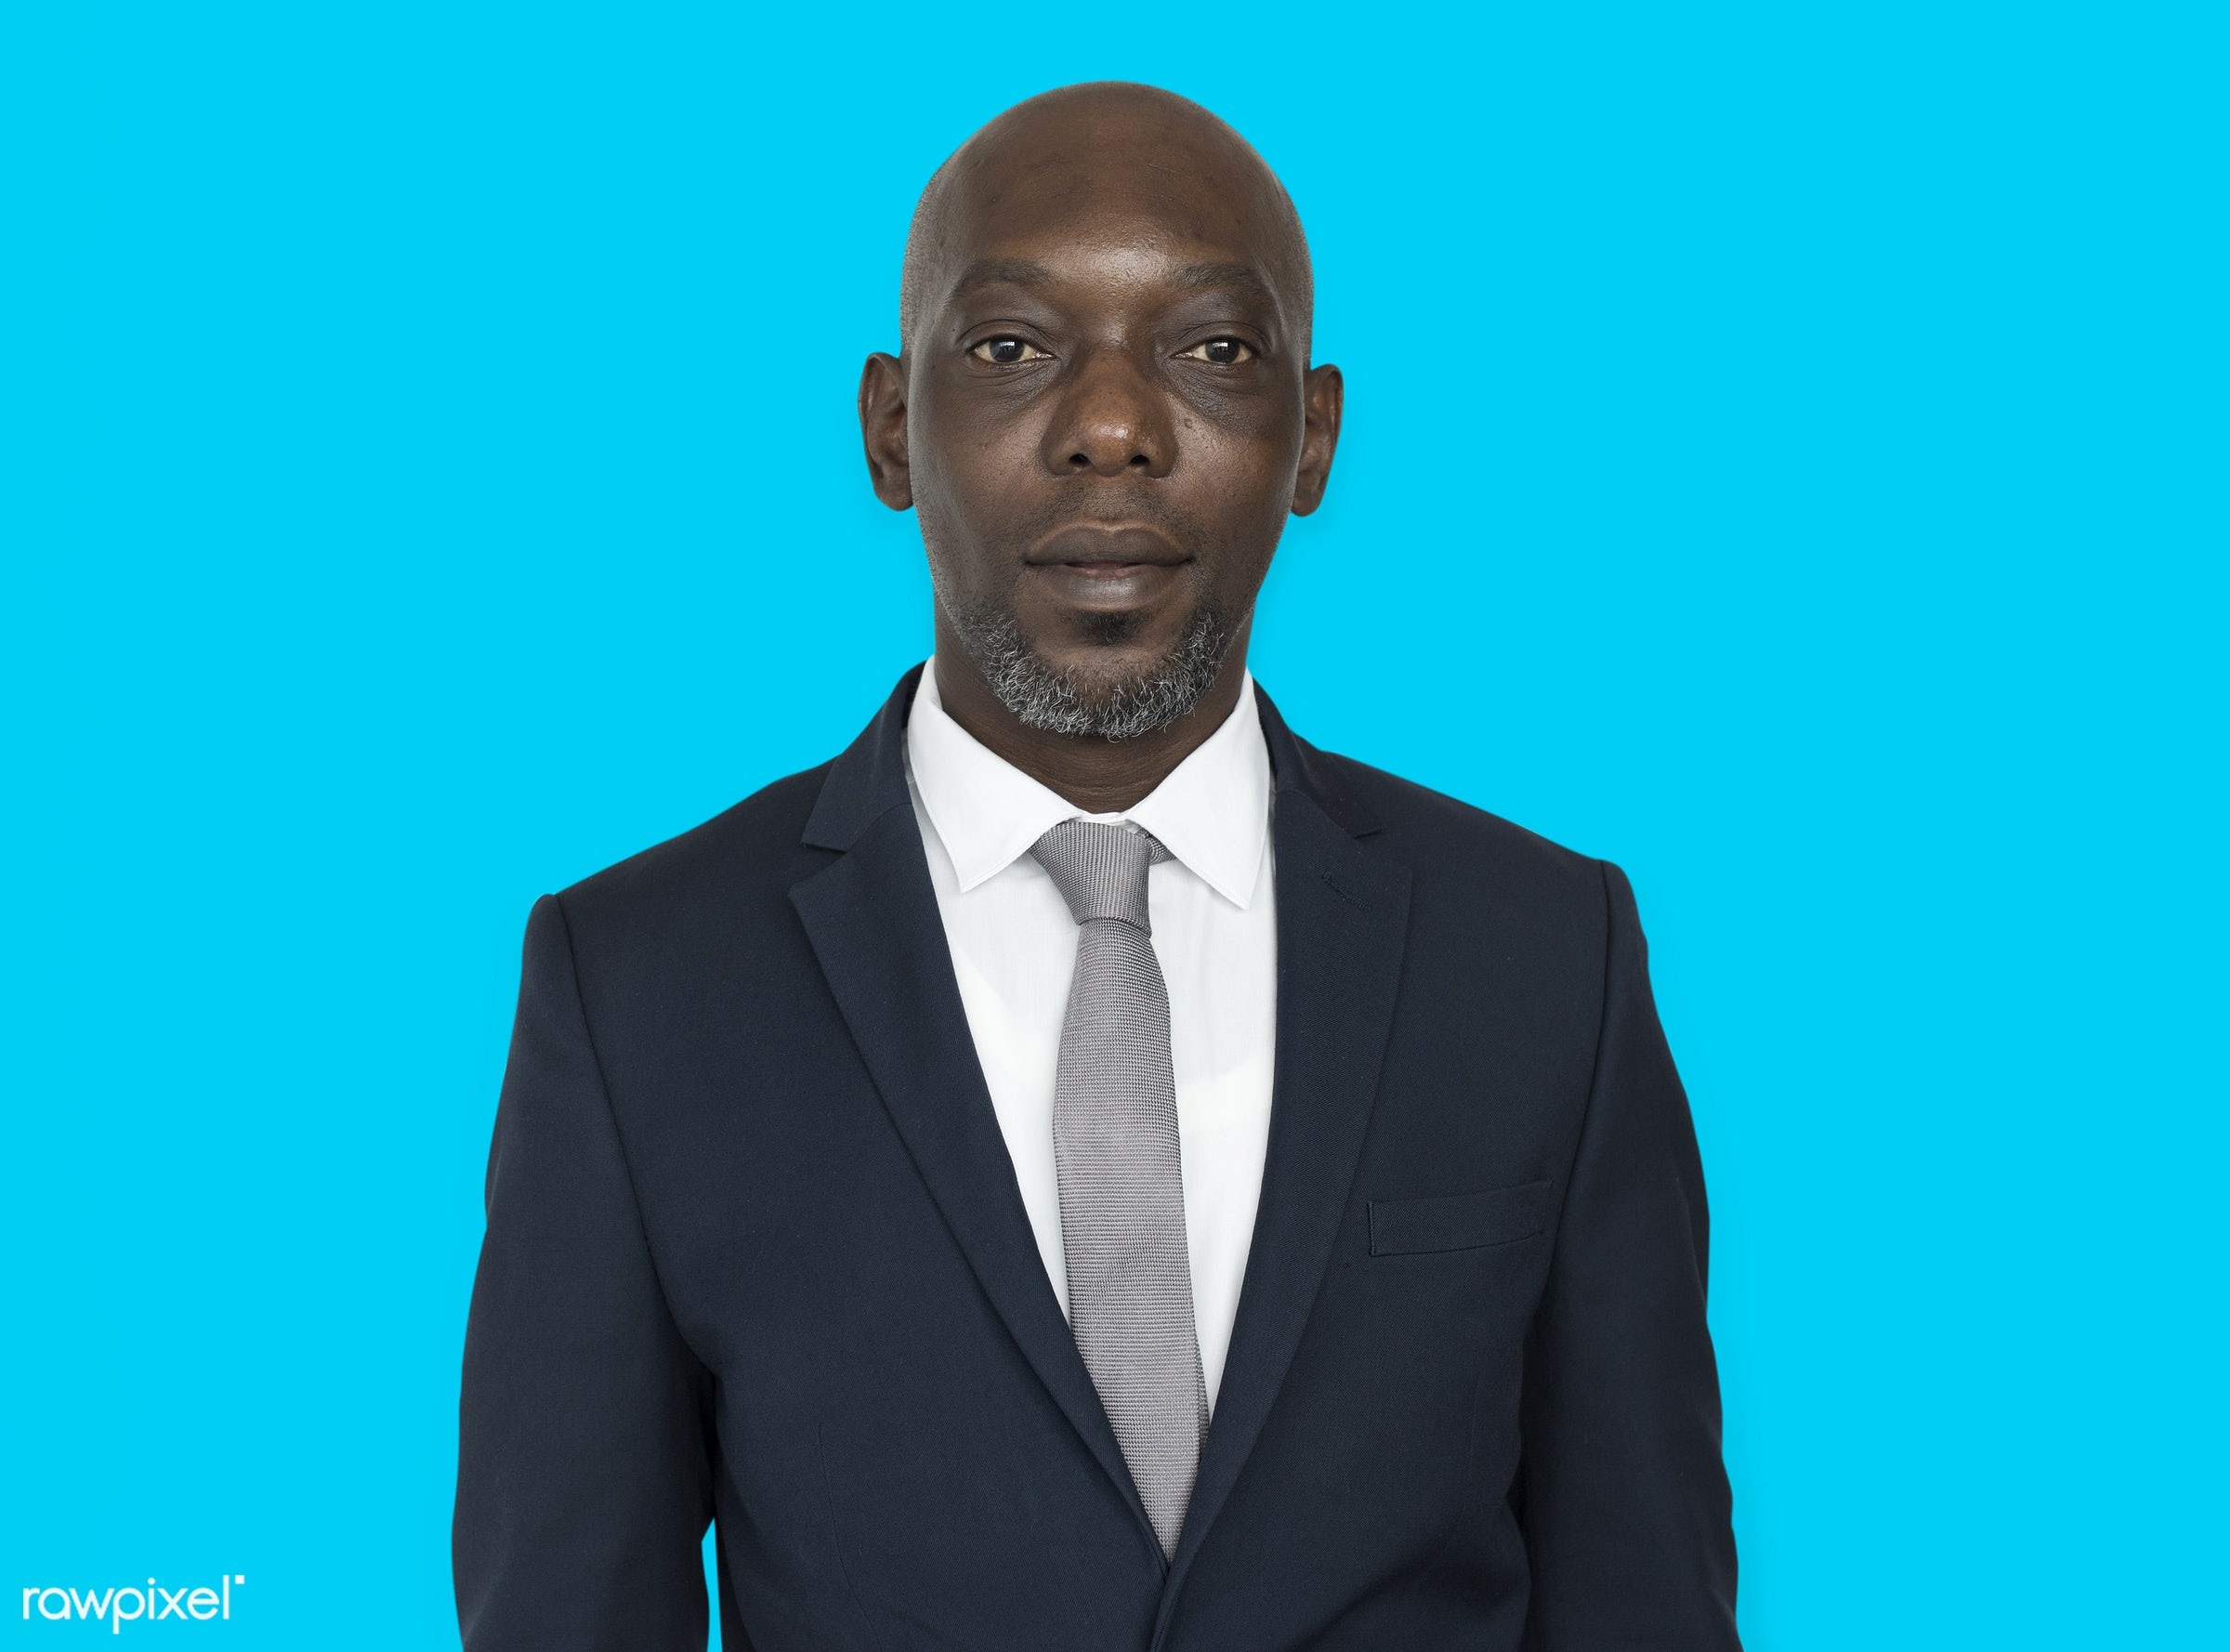 african, african american, black, business, colorful, colourful, man, professional, start up, suit, blue background, tie